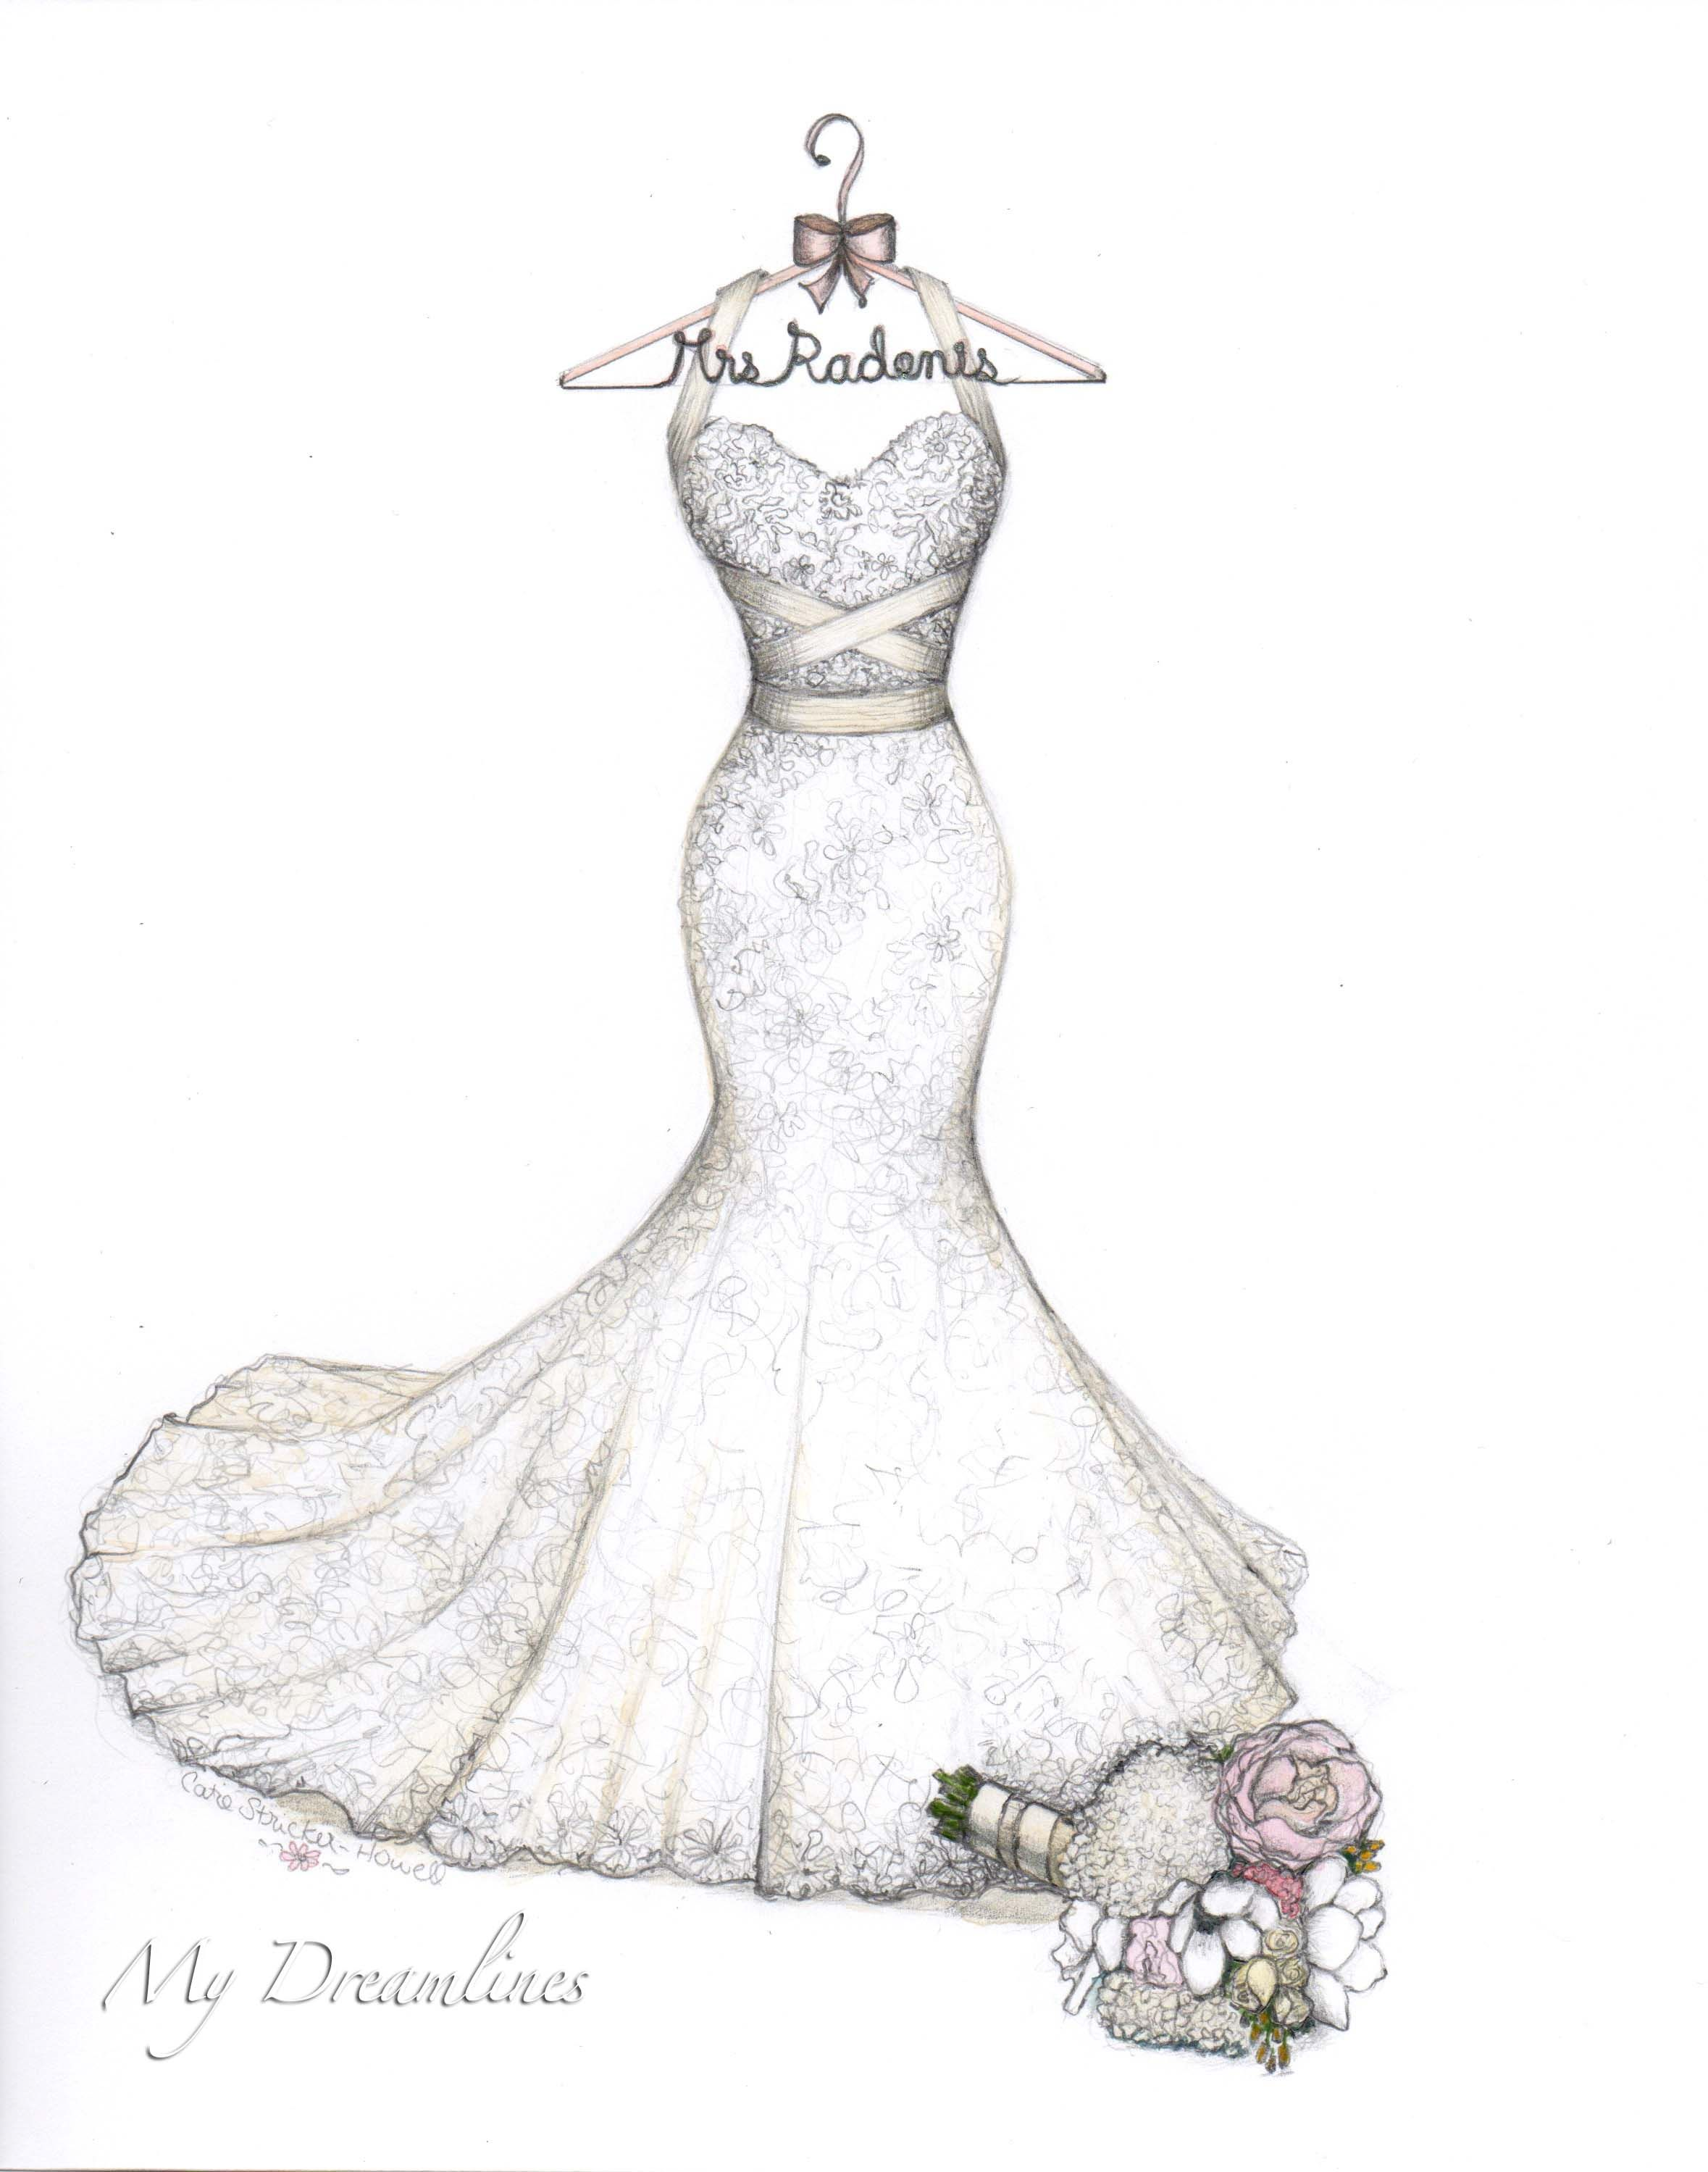 Lace Mermaid Wedding Gown With Wrap Halter Bouquet And Decorative Hanger Sketch By Catie Stricker